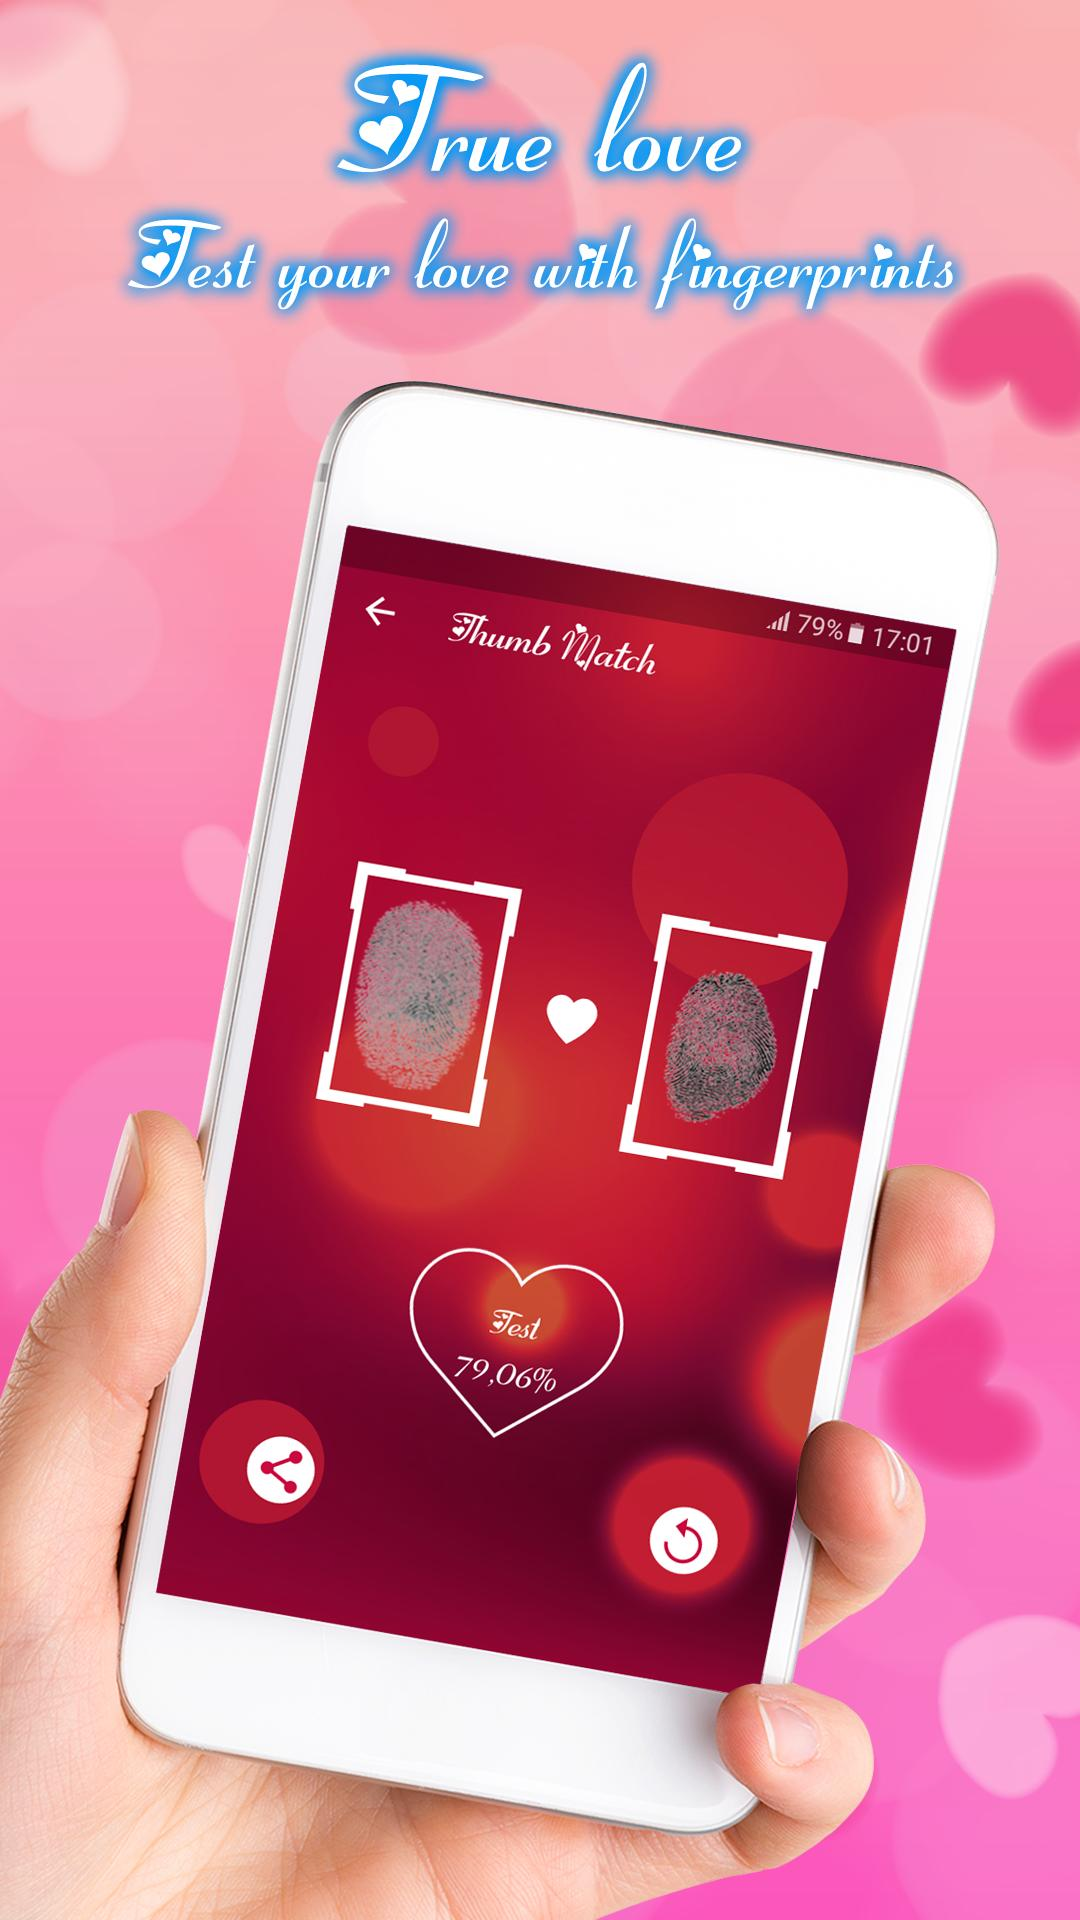 True love test for Android - APK Download